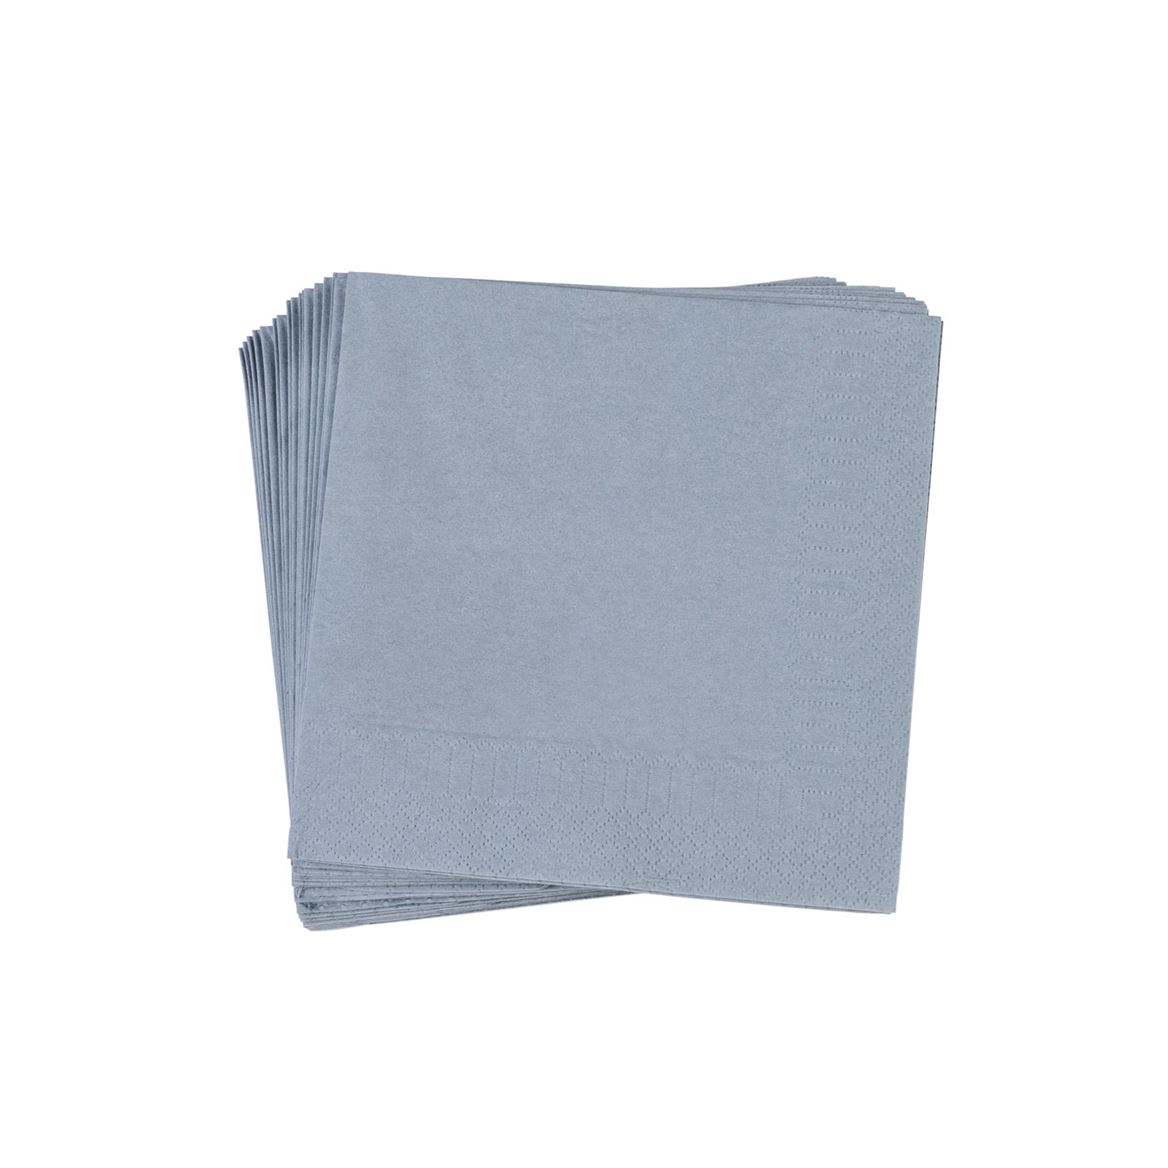 UNI Set de 20 serviettes gris Larg. 33 x Long. 33 cm_uni-set-de-20-serviettes-gris-larg--33-x-long--33-cm